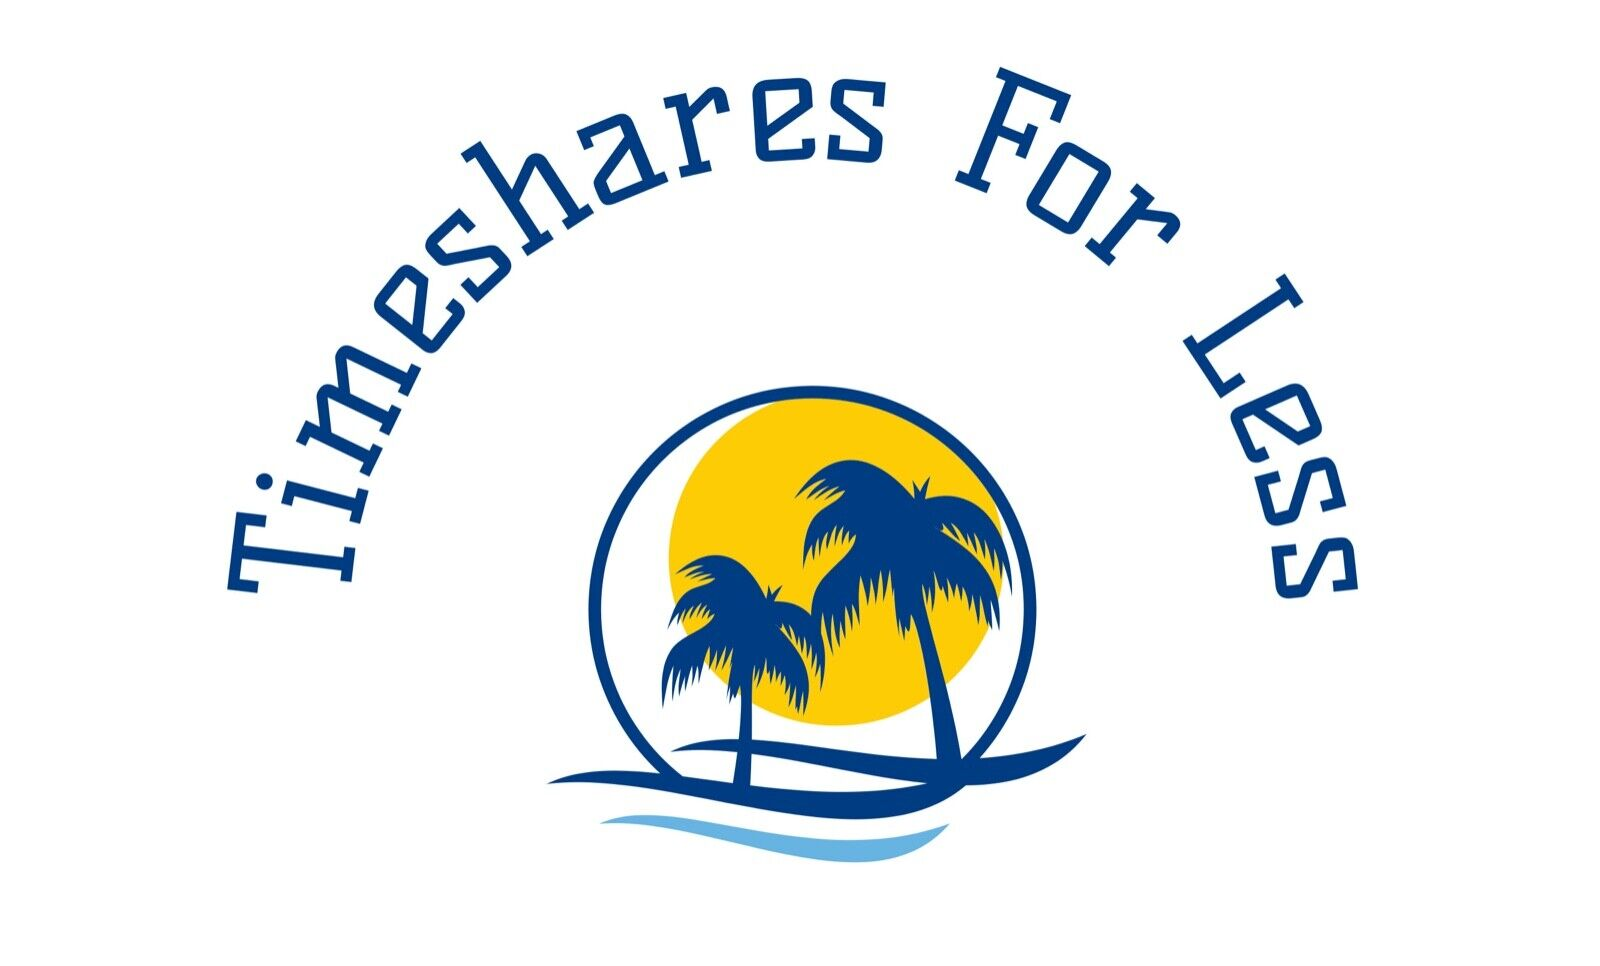 TAHITI VILLAGE RESORT TIMESHARE 1B/1B FLOAT FREE 2020 USE LAS VEGAS NEVADA - $13.54